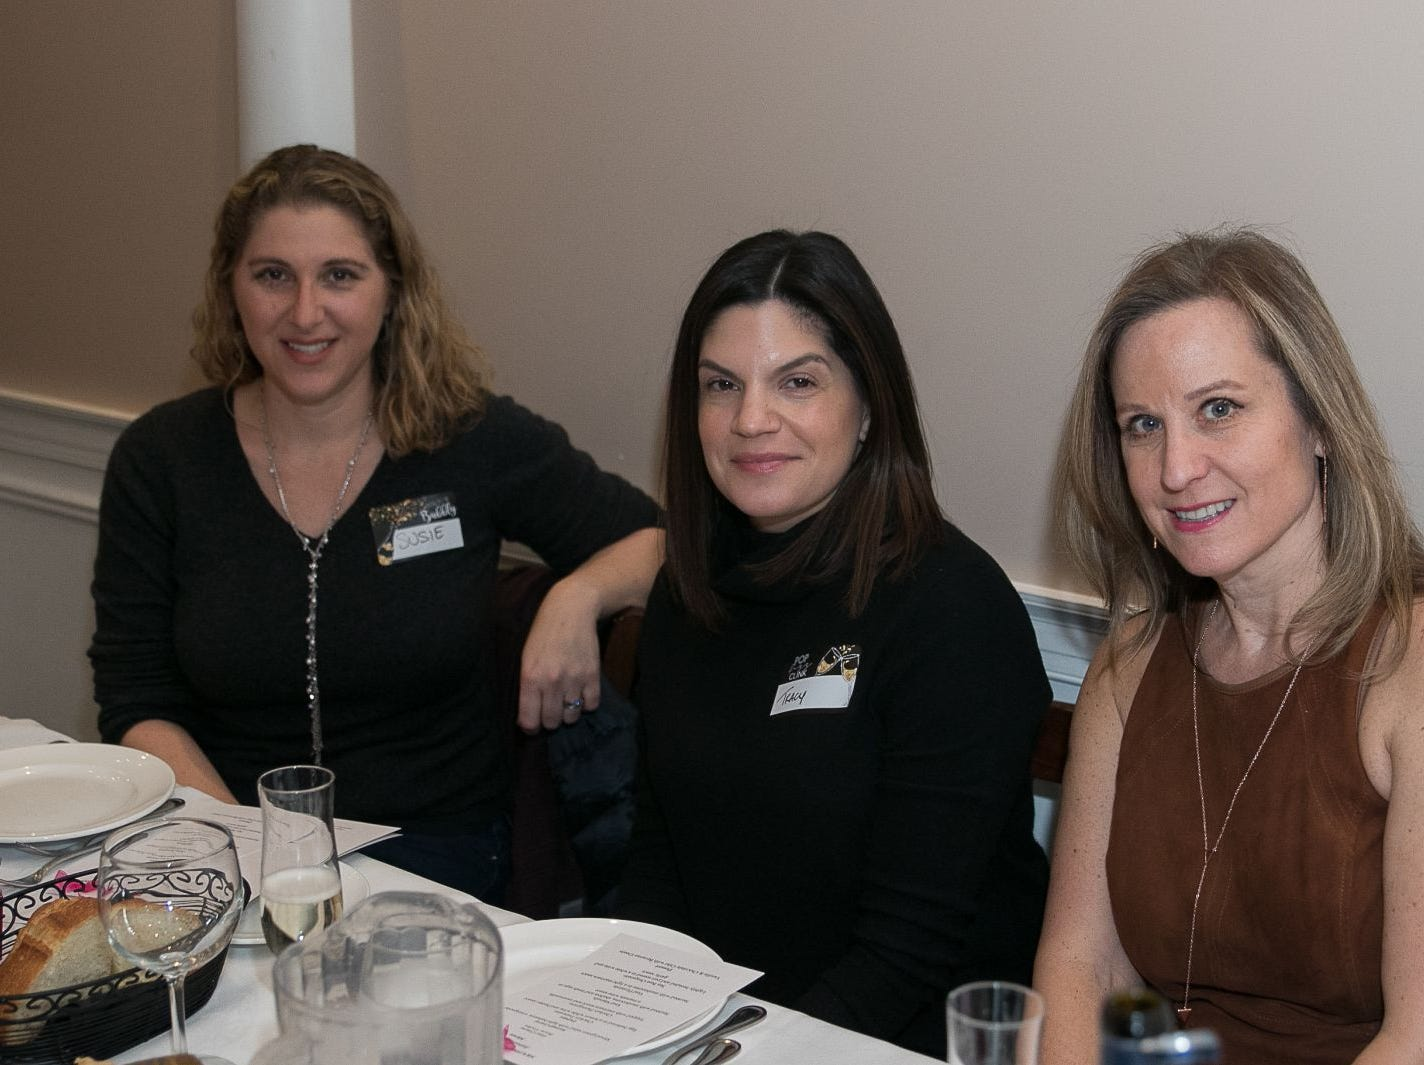 Susie Fein, Tracy Penski, Laura Taras. The Saddle River Valley Junior Woman's Club held an inductee dinnerfor incoming members at Bellisimo Restaurante in Montvale. 01/23/2019